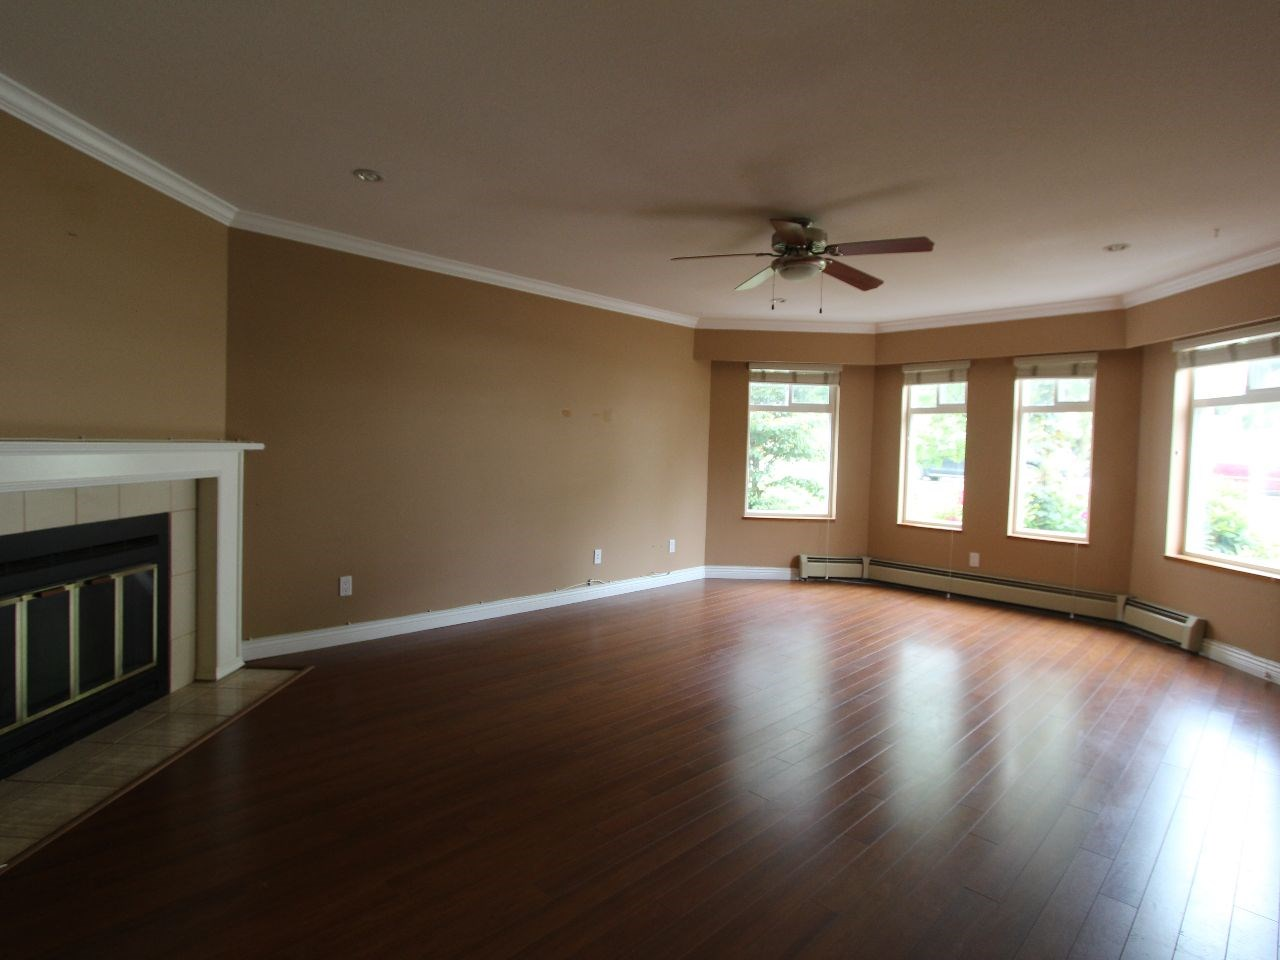 Photo 6: 7926 12TH Avenue in Burnaby: East Burnaby House for sale (Burnaby East)  : MLS® # R2071909